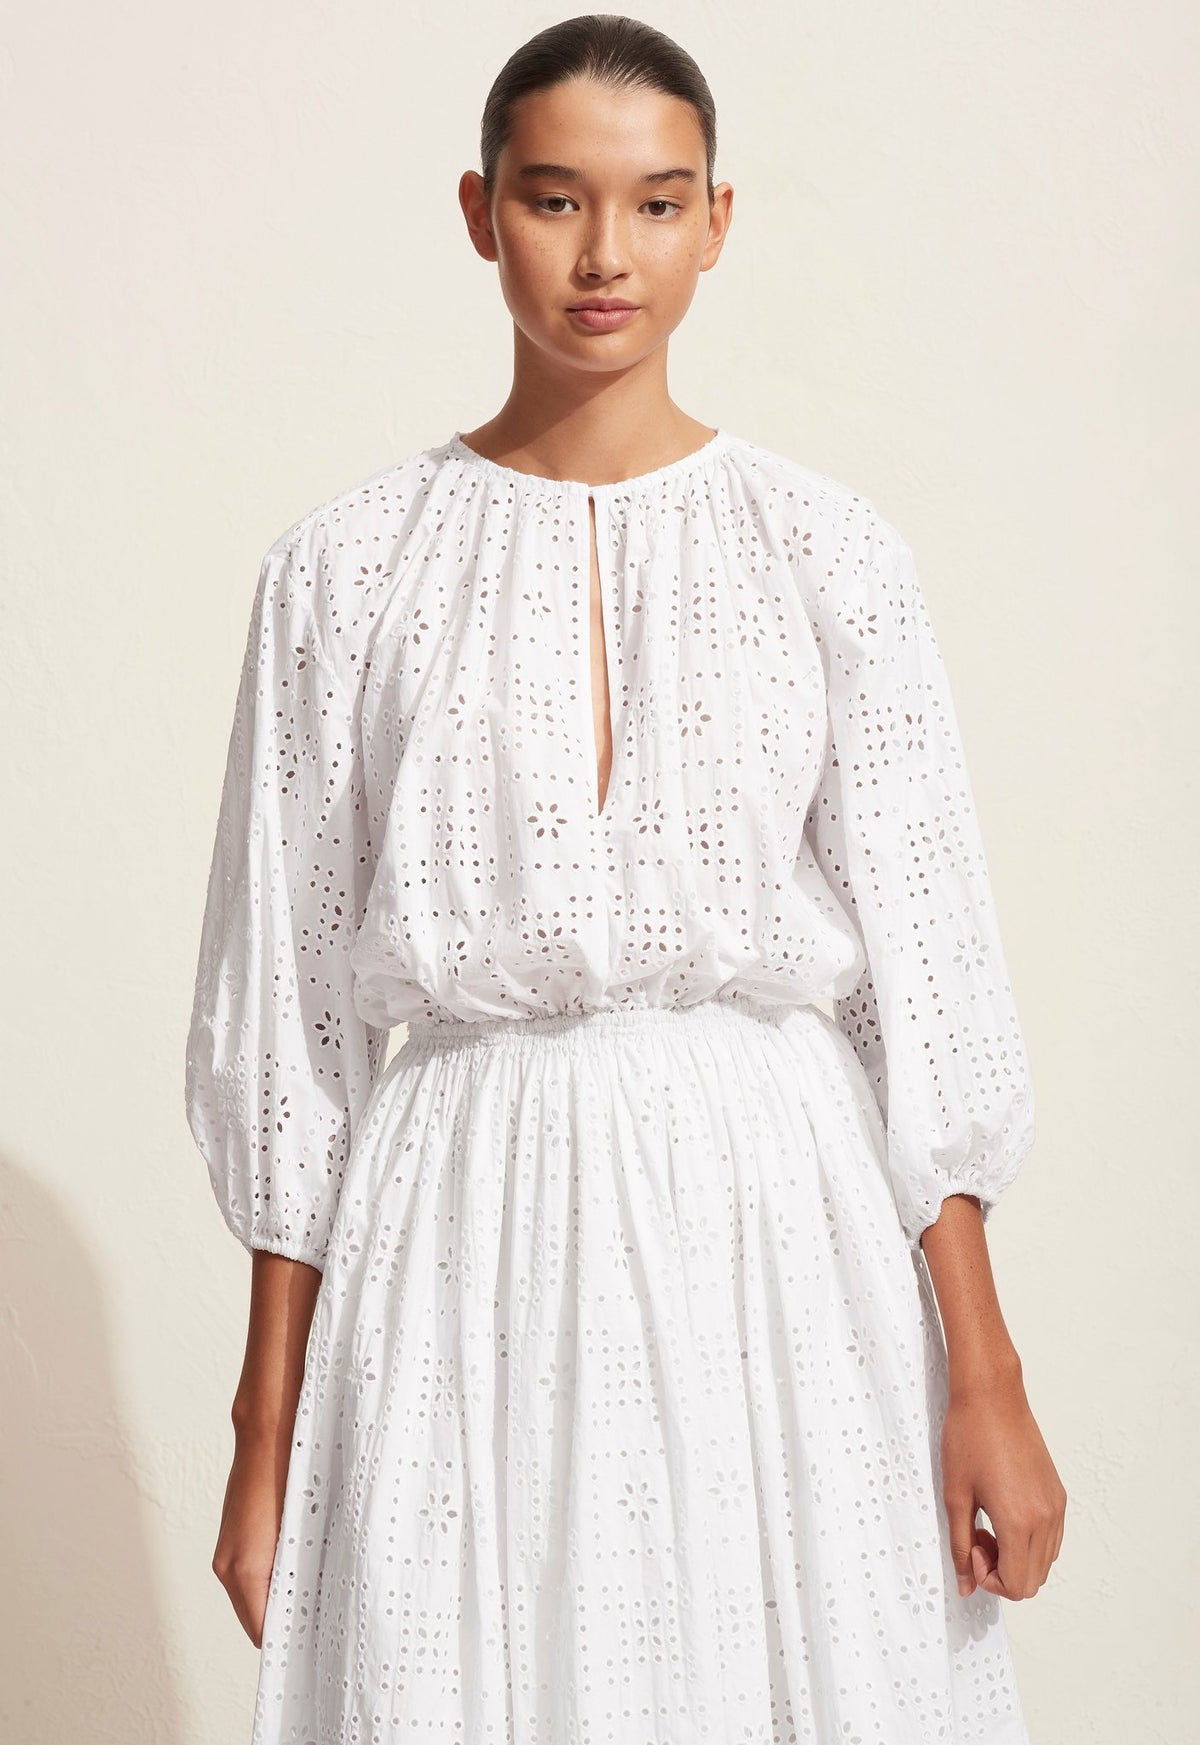 The Crochet Broderie Day Dress